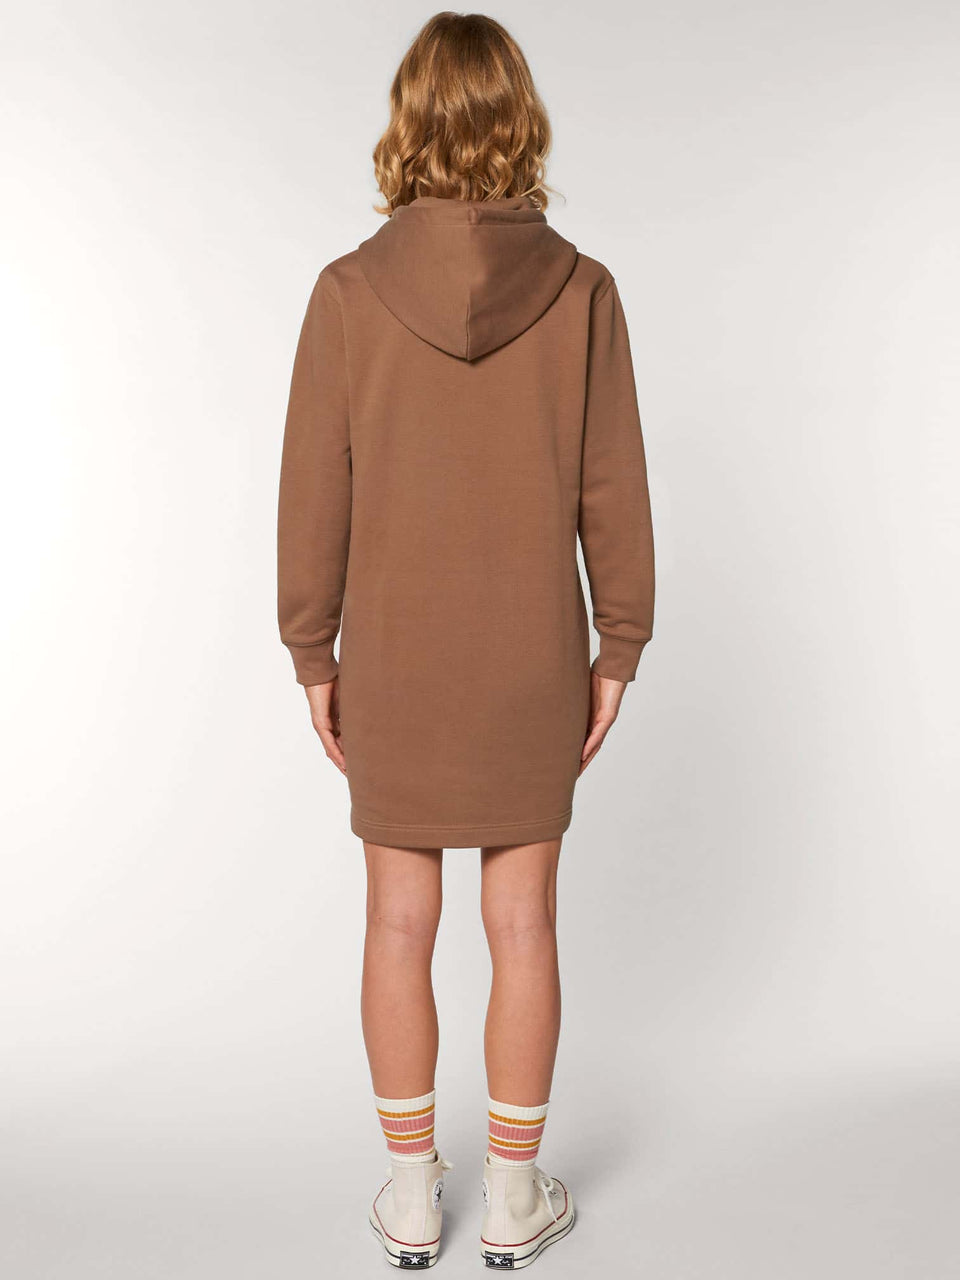 Bufo Alvarius Made To Order Women Hoodie Dress - Caramel